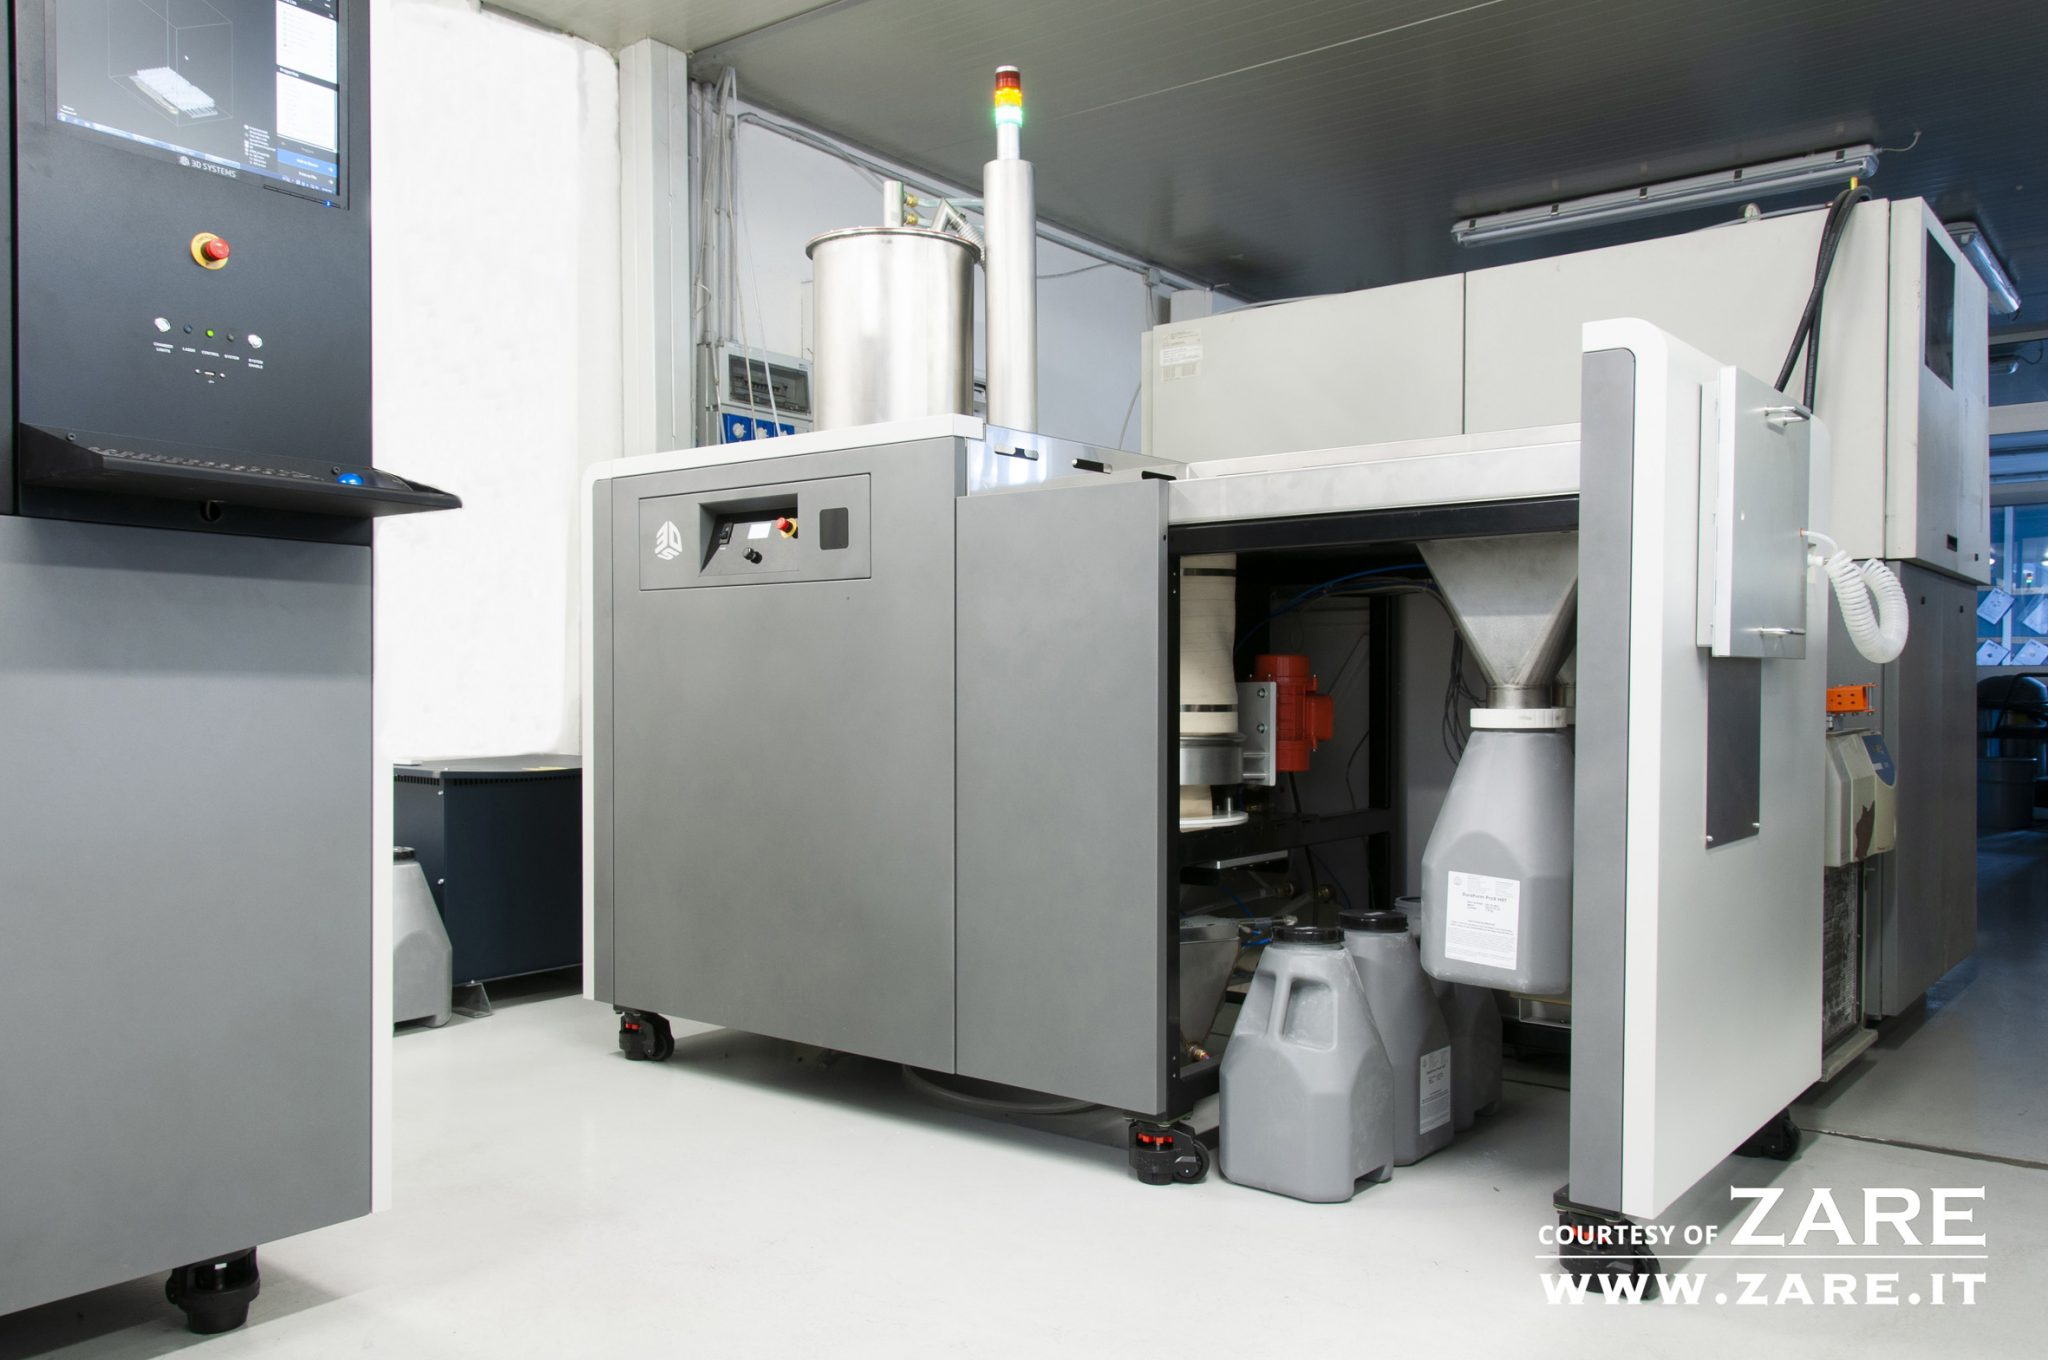 The 3D Systems ProX SLS 6100 3D printer installed at ZARE. Photo via ZARE.